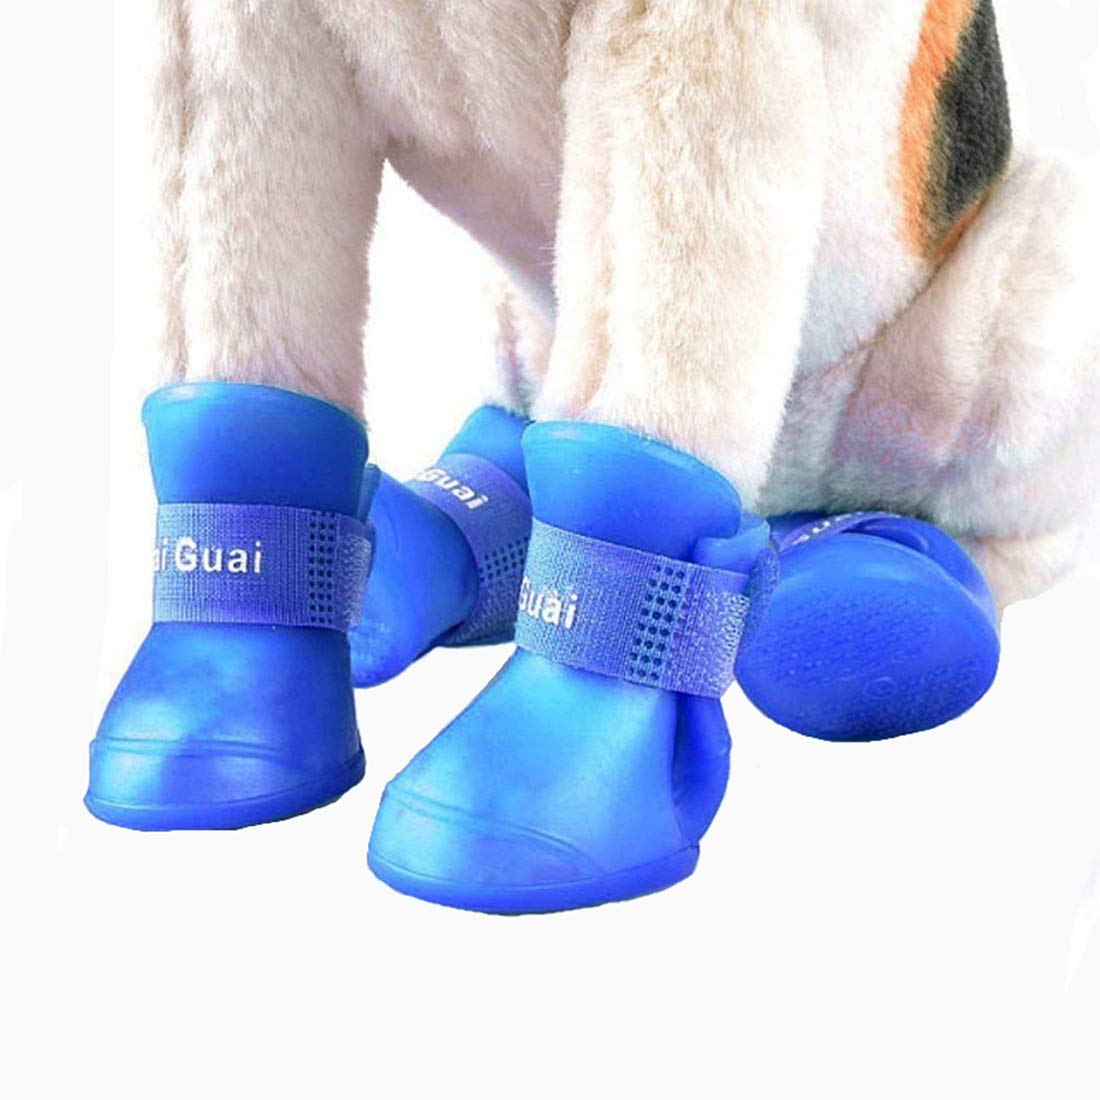 VICTORIE Dog Rain Shoes Waterproof Protective Boots for Small Medium Large Dogs with Velcro Blue 4pcs(XXL: 7.0 X 9.0 cm)